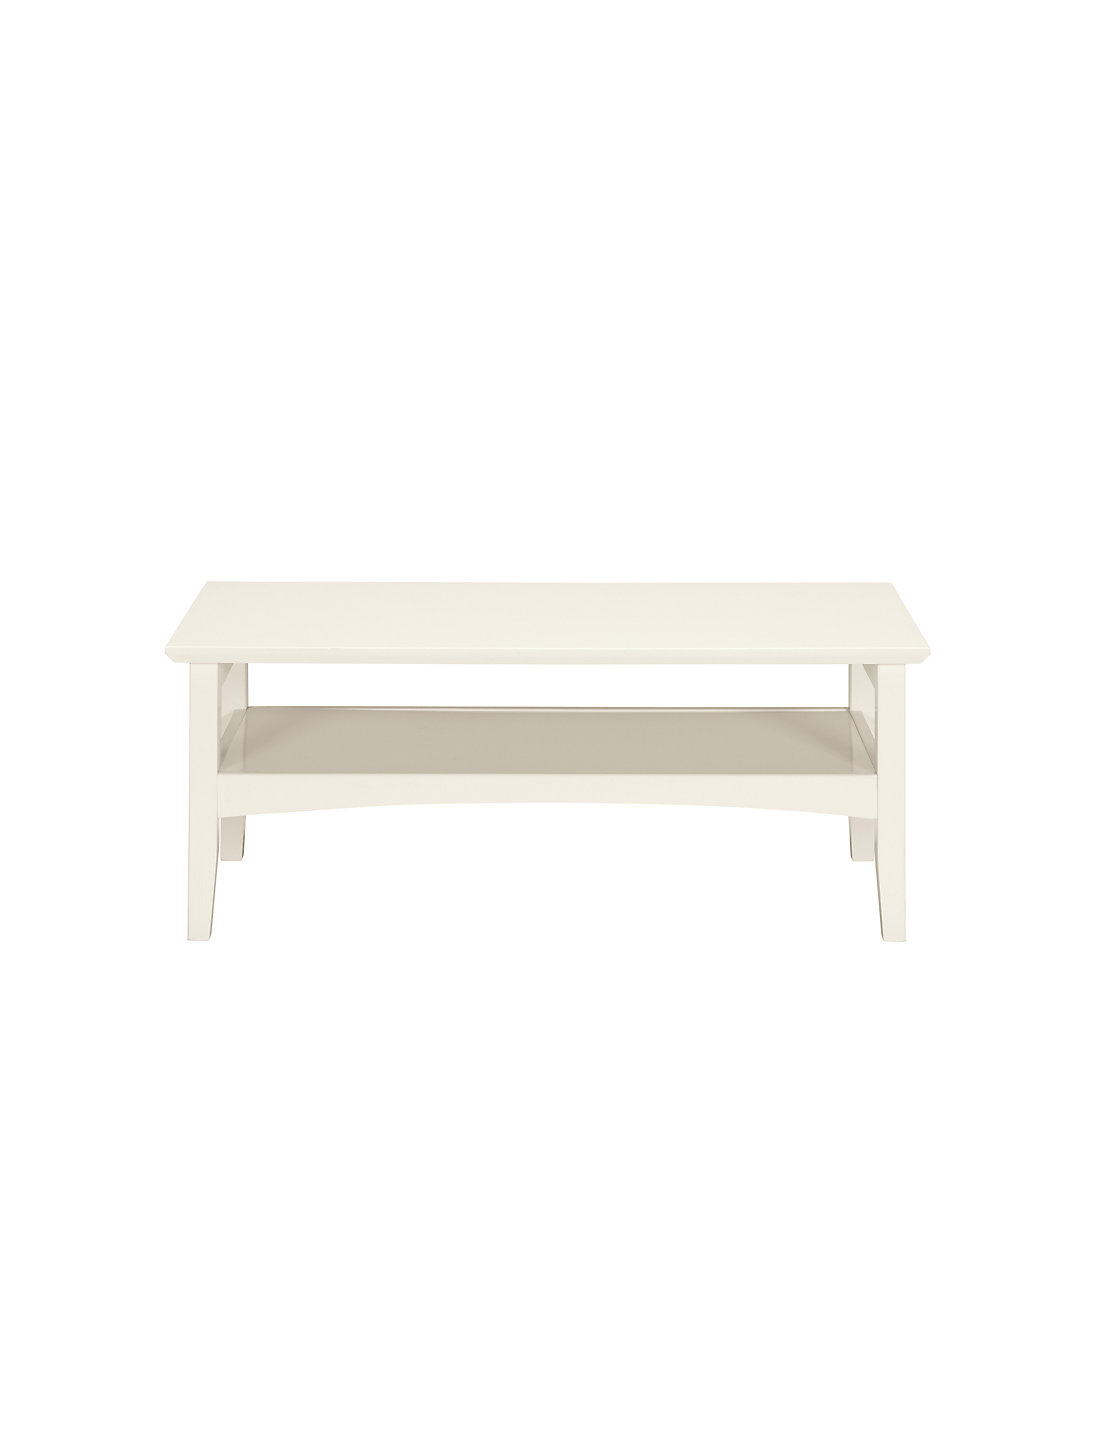 Hastings living coffee table self assembly ms hastings living coffee table self assembly geotapseo Choice Image